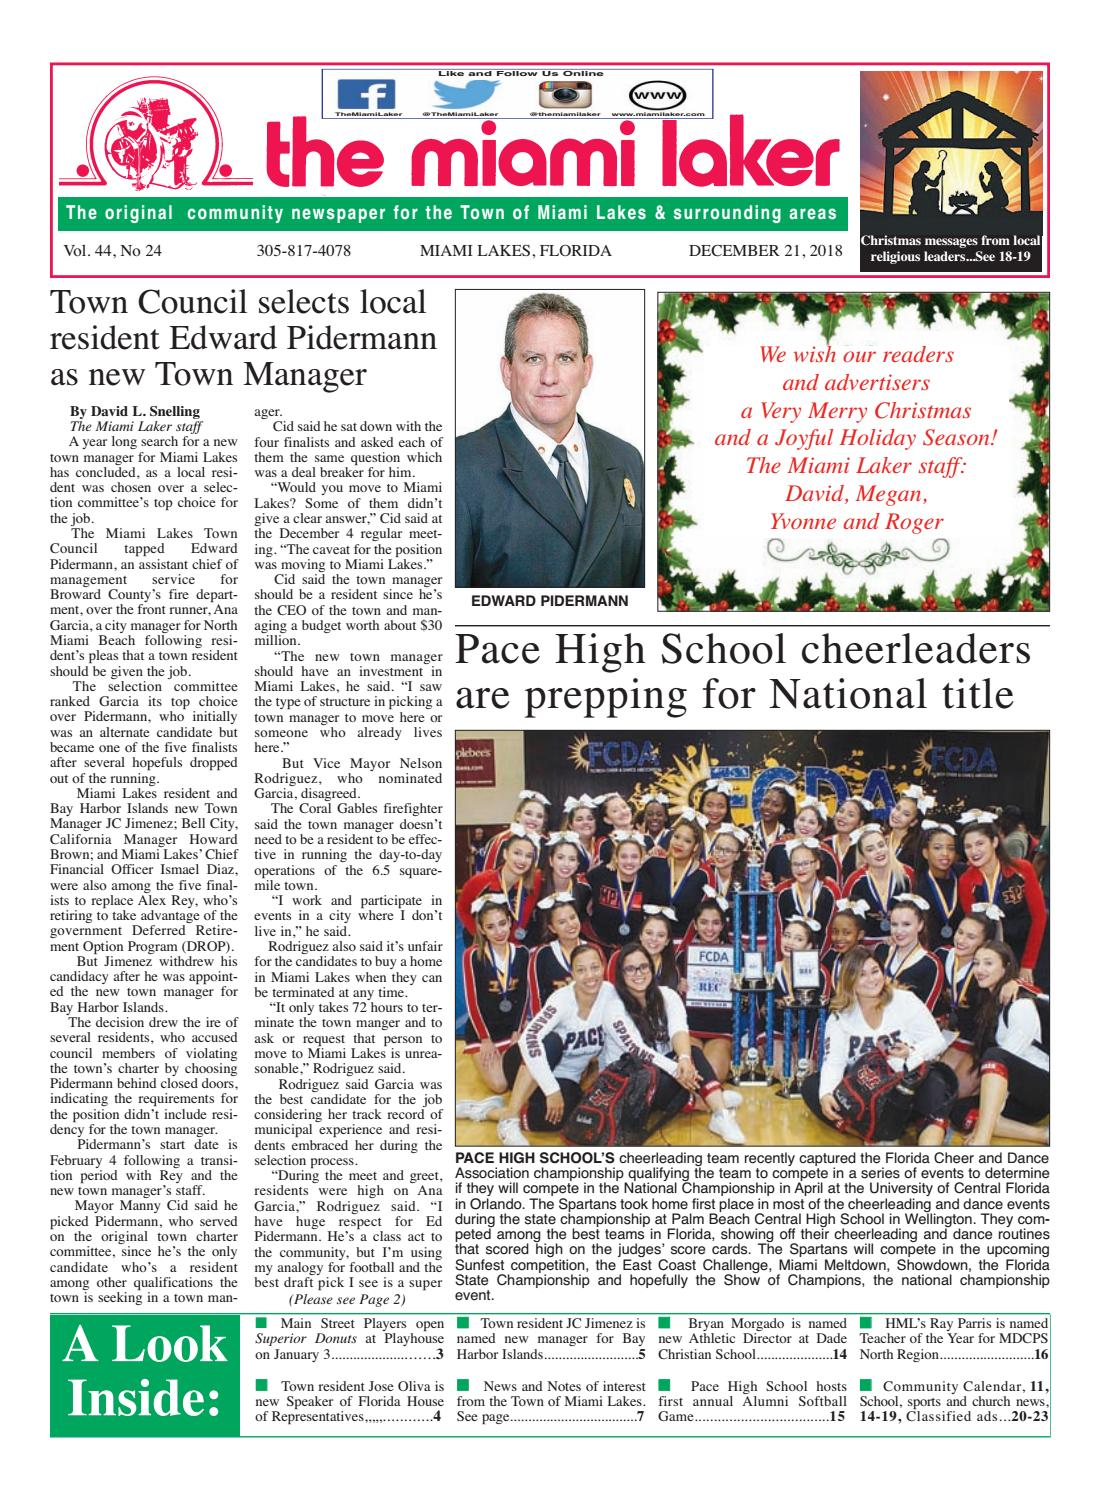 The Miami Laker, December 21, 2018 by MiamiLaker - issuu